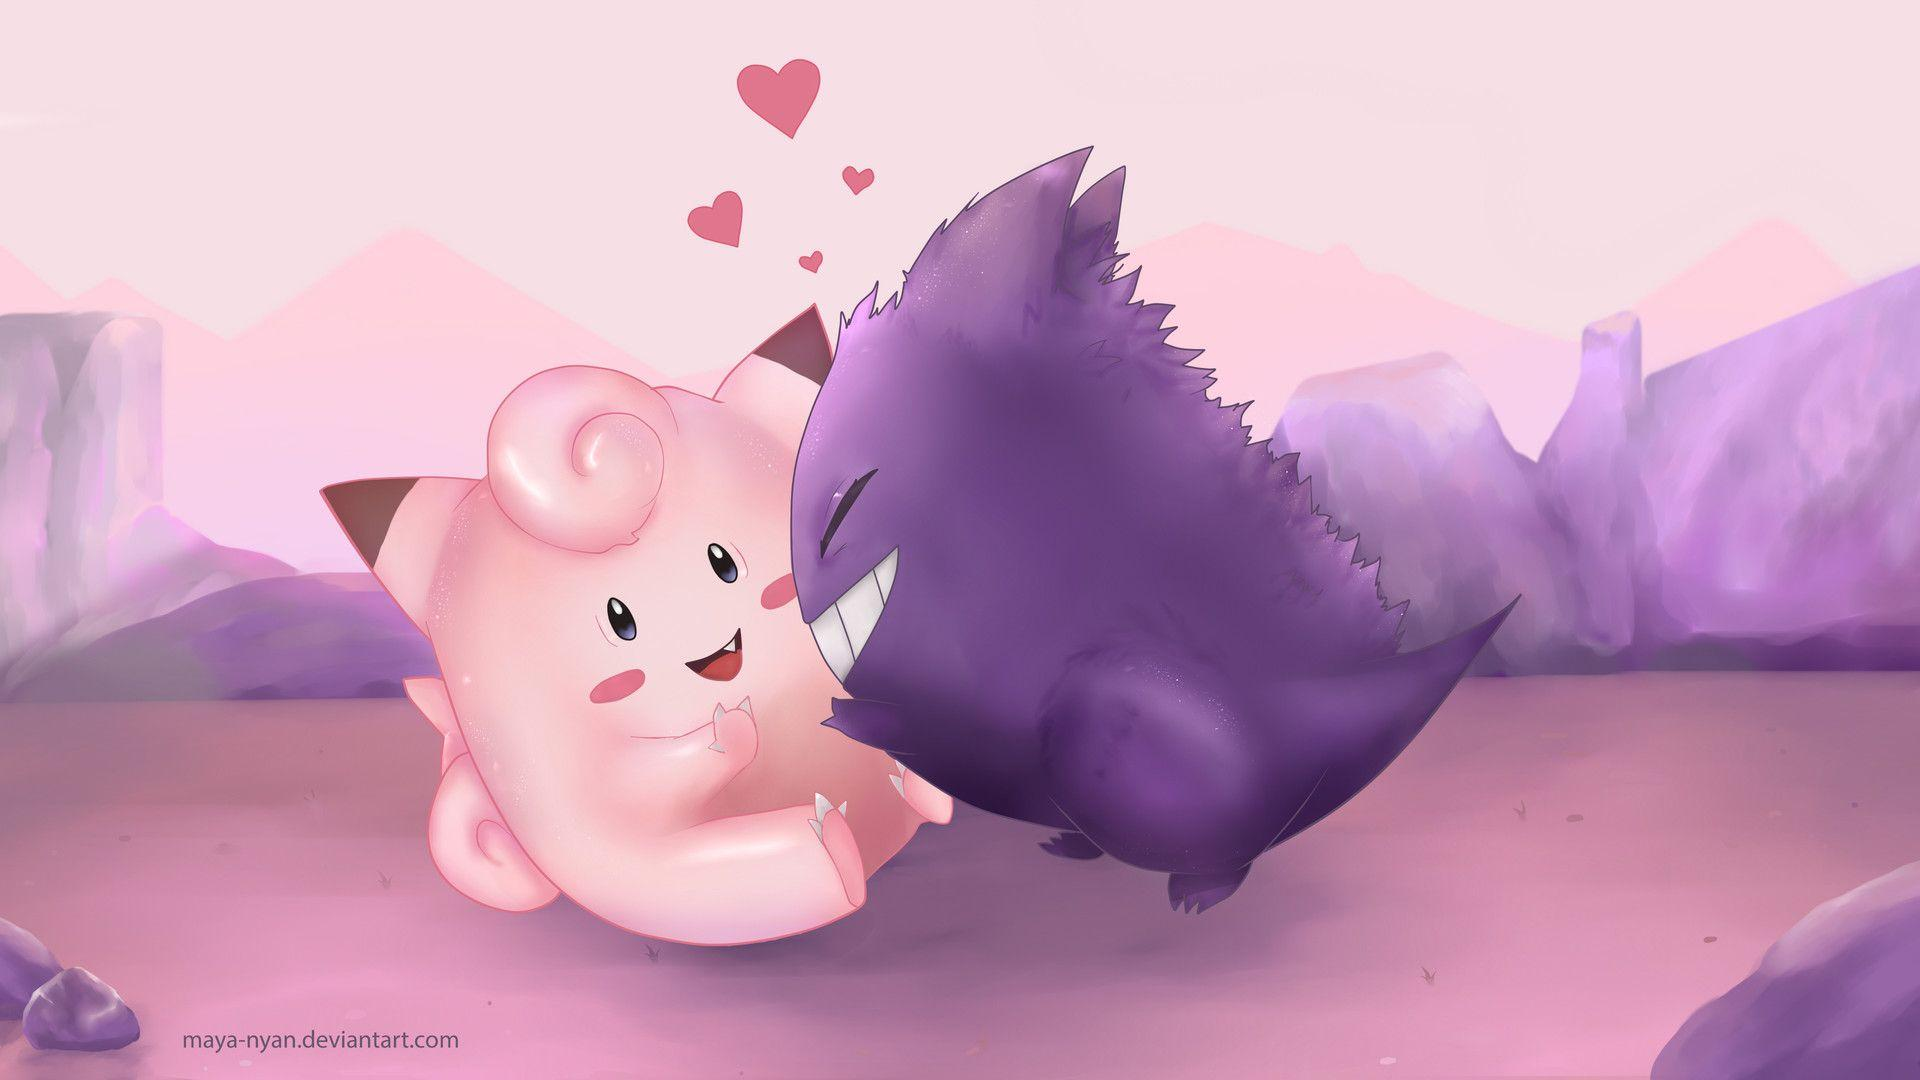 ArtStation - Gengar and Clefairy Wallpaper, Mirela Scheul